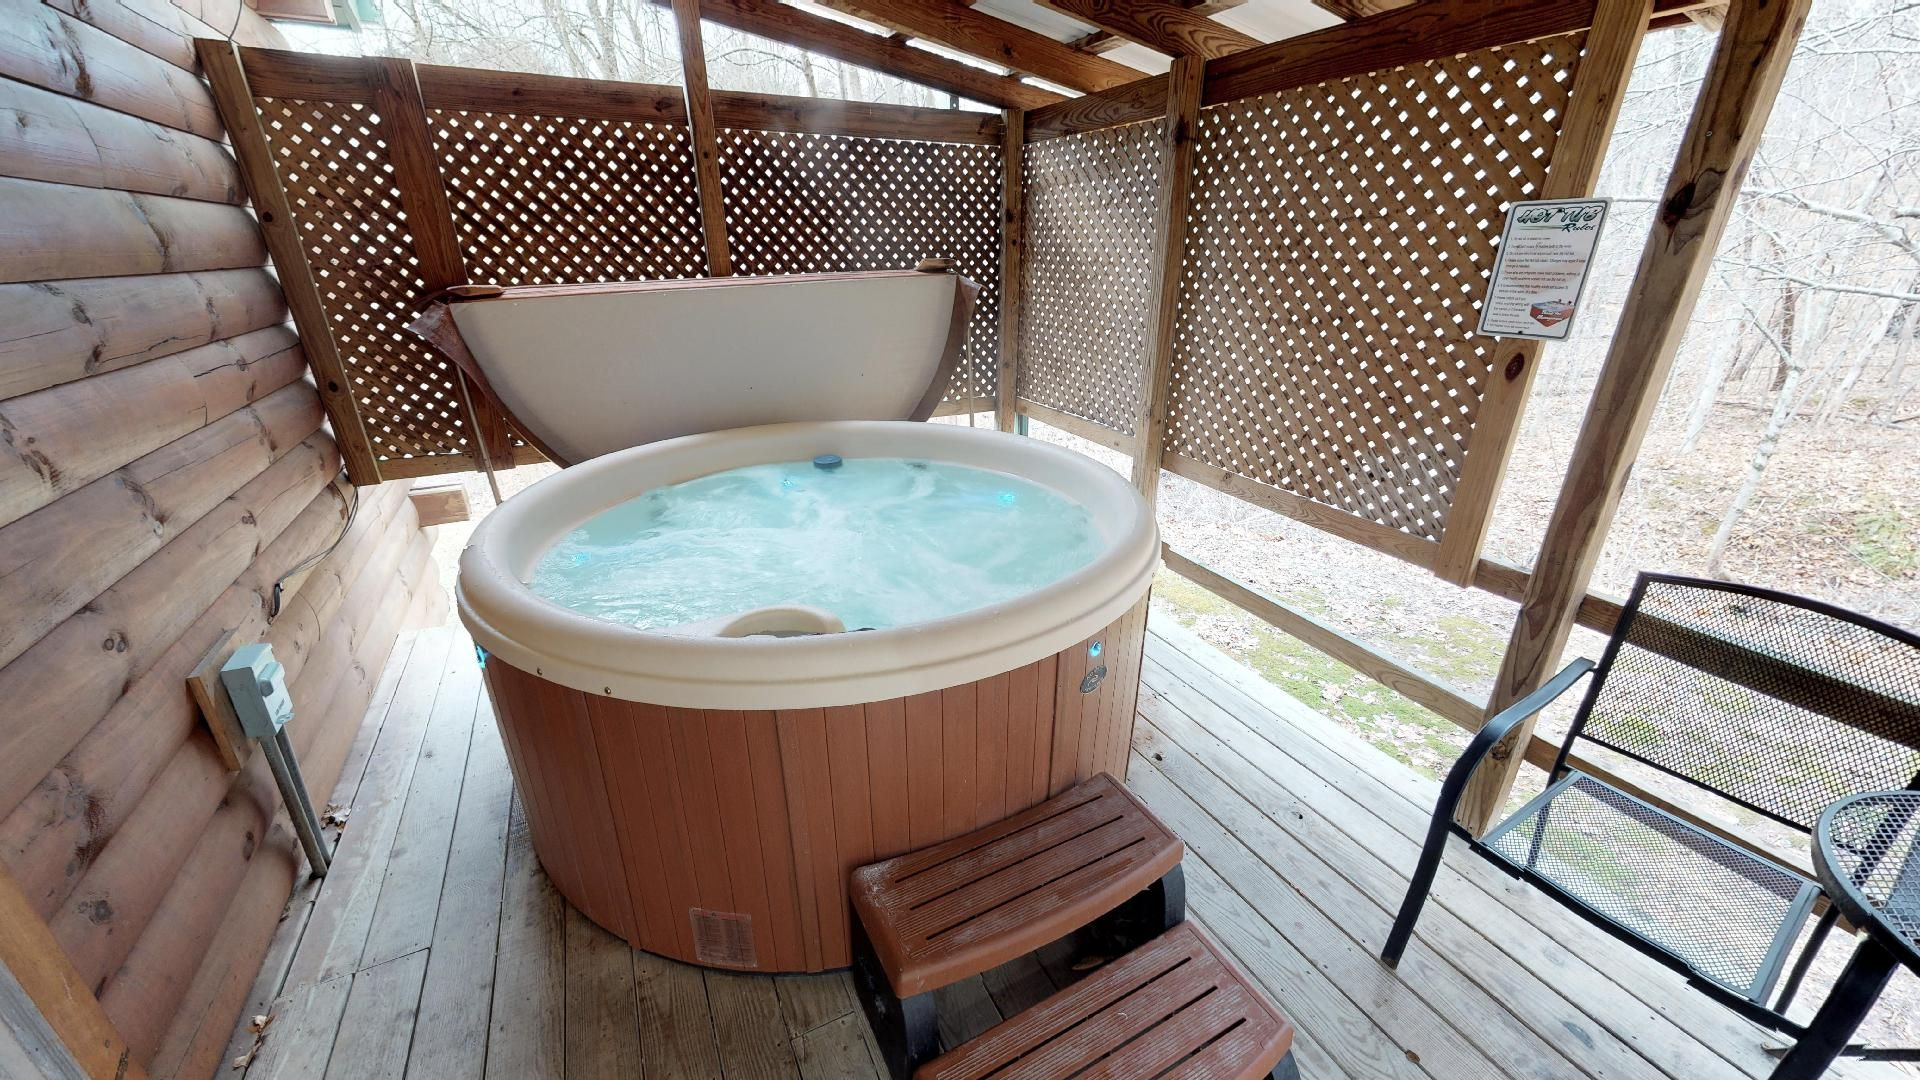 Briarwood Couples hot tub - Perfect for the two of you. Ultimate privacy on the back deck.